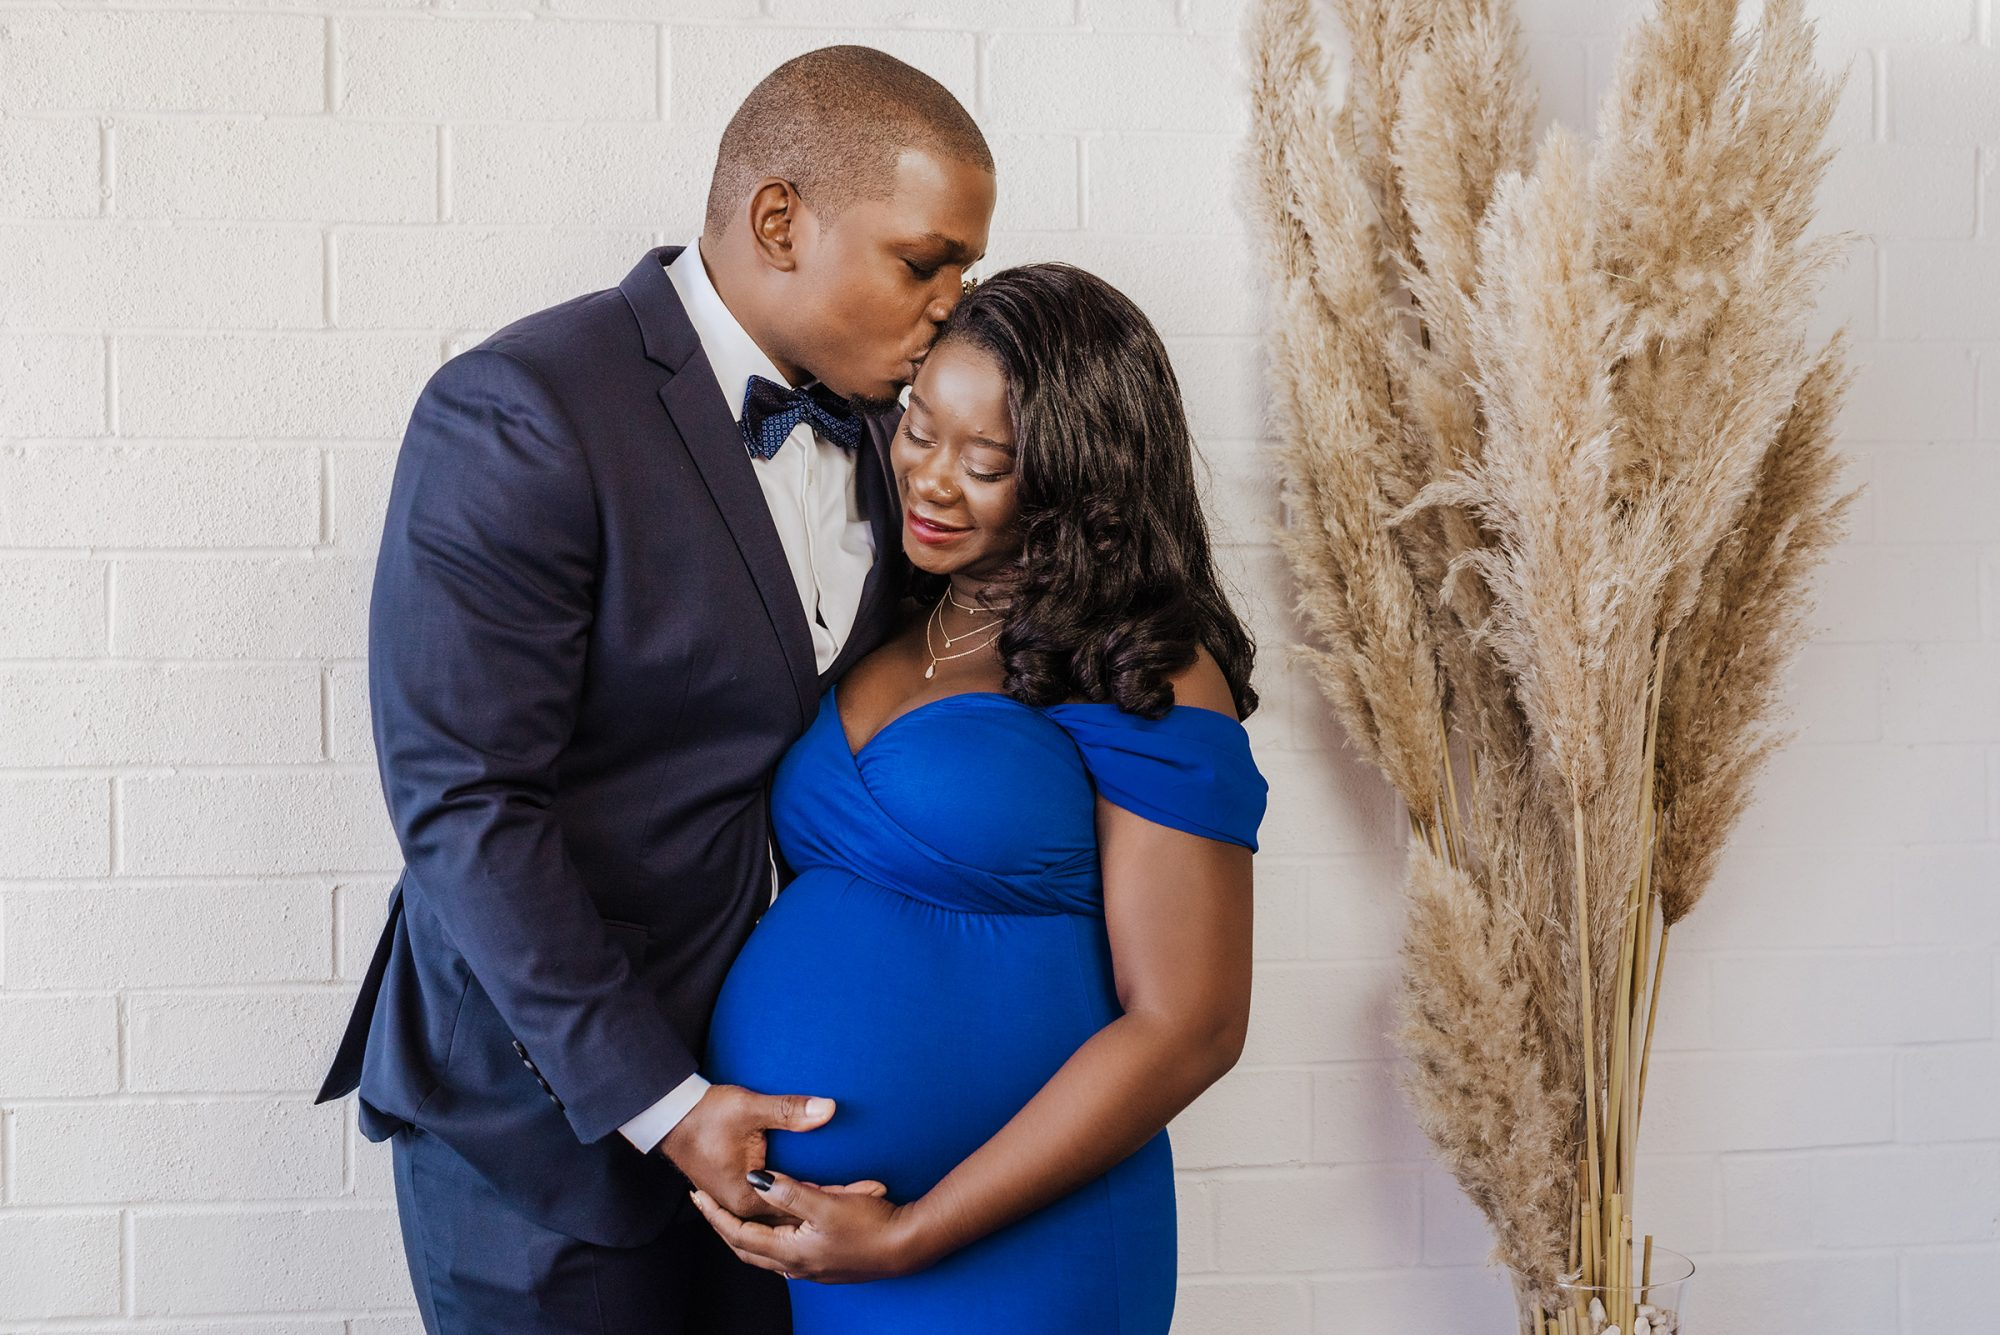 Married at First Sight's Deonna and Greg Baby Sex Reveal